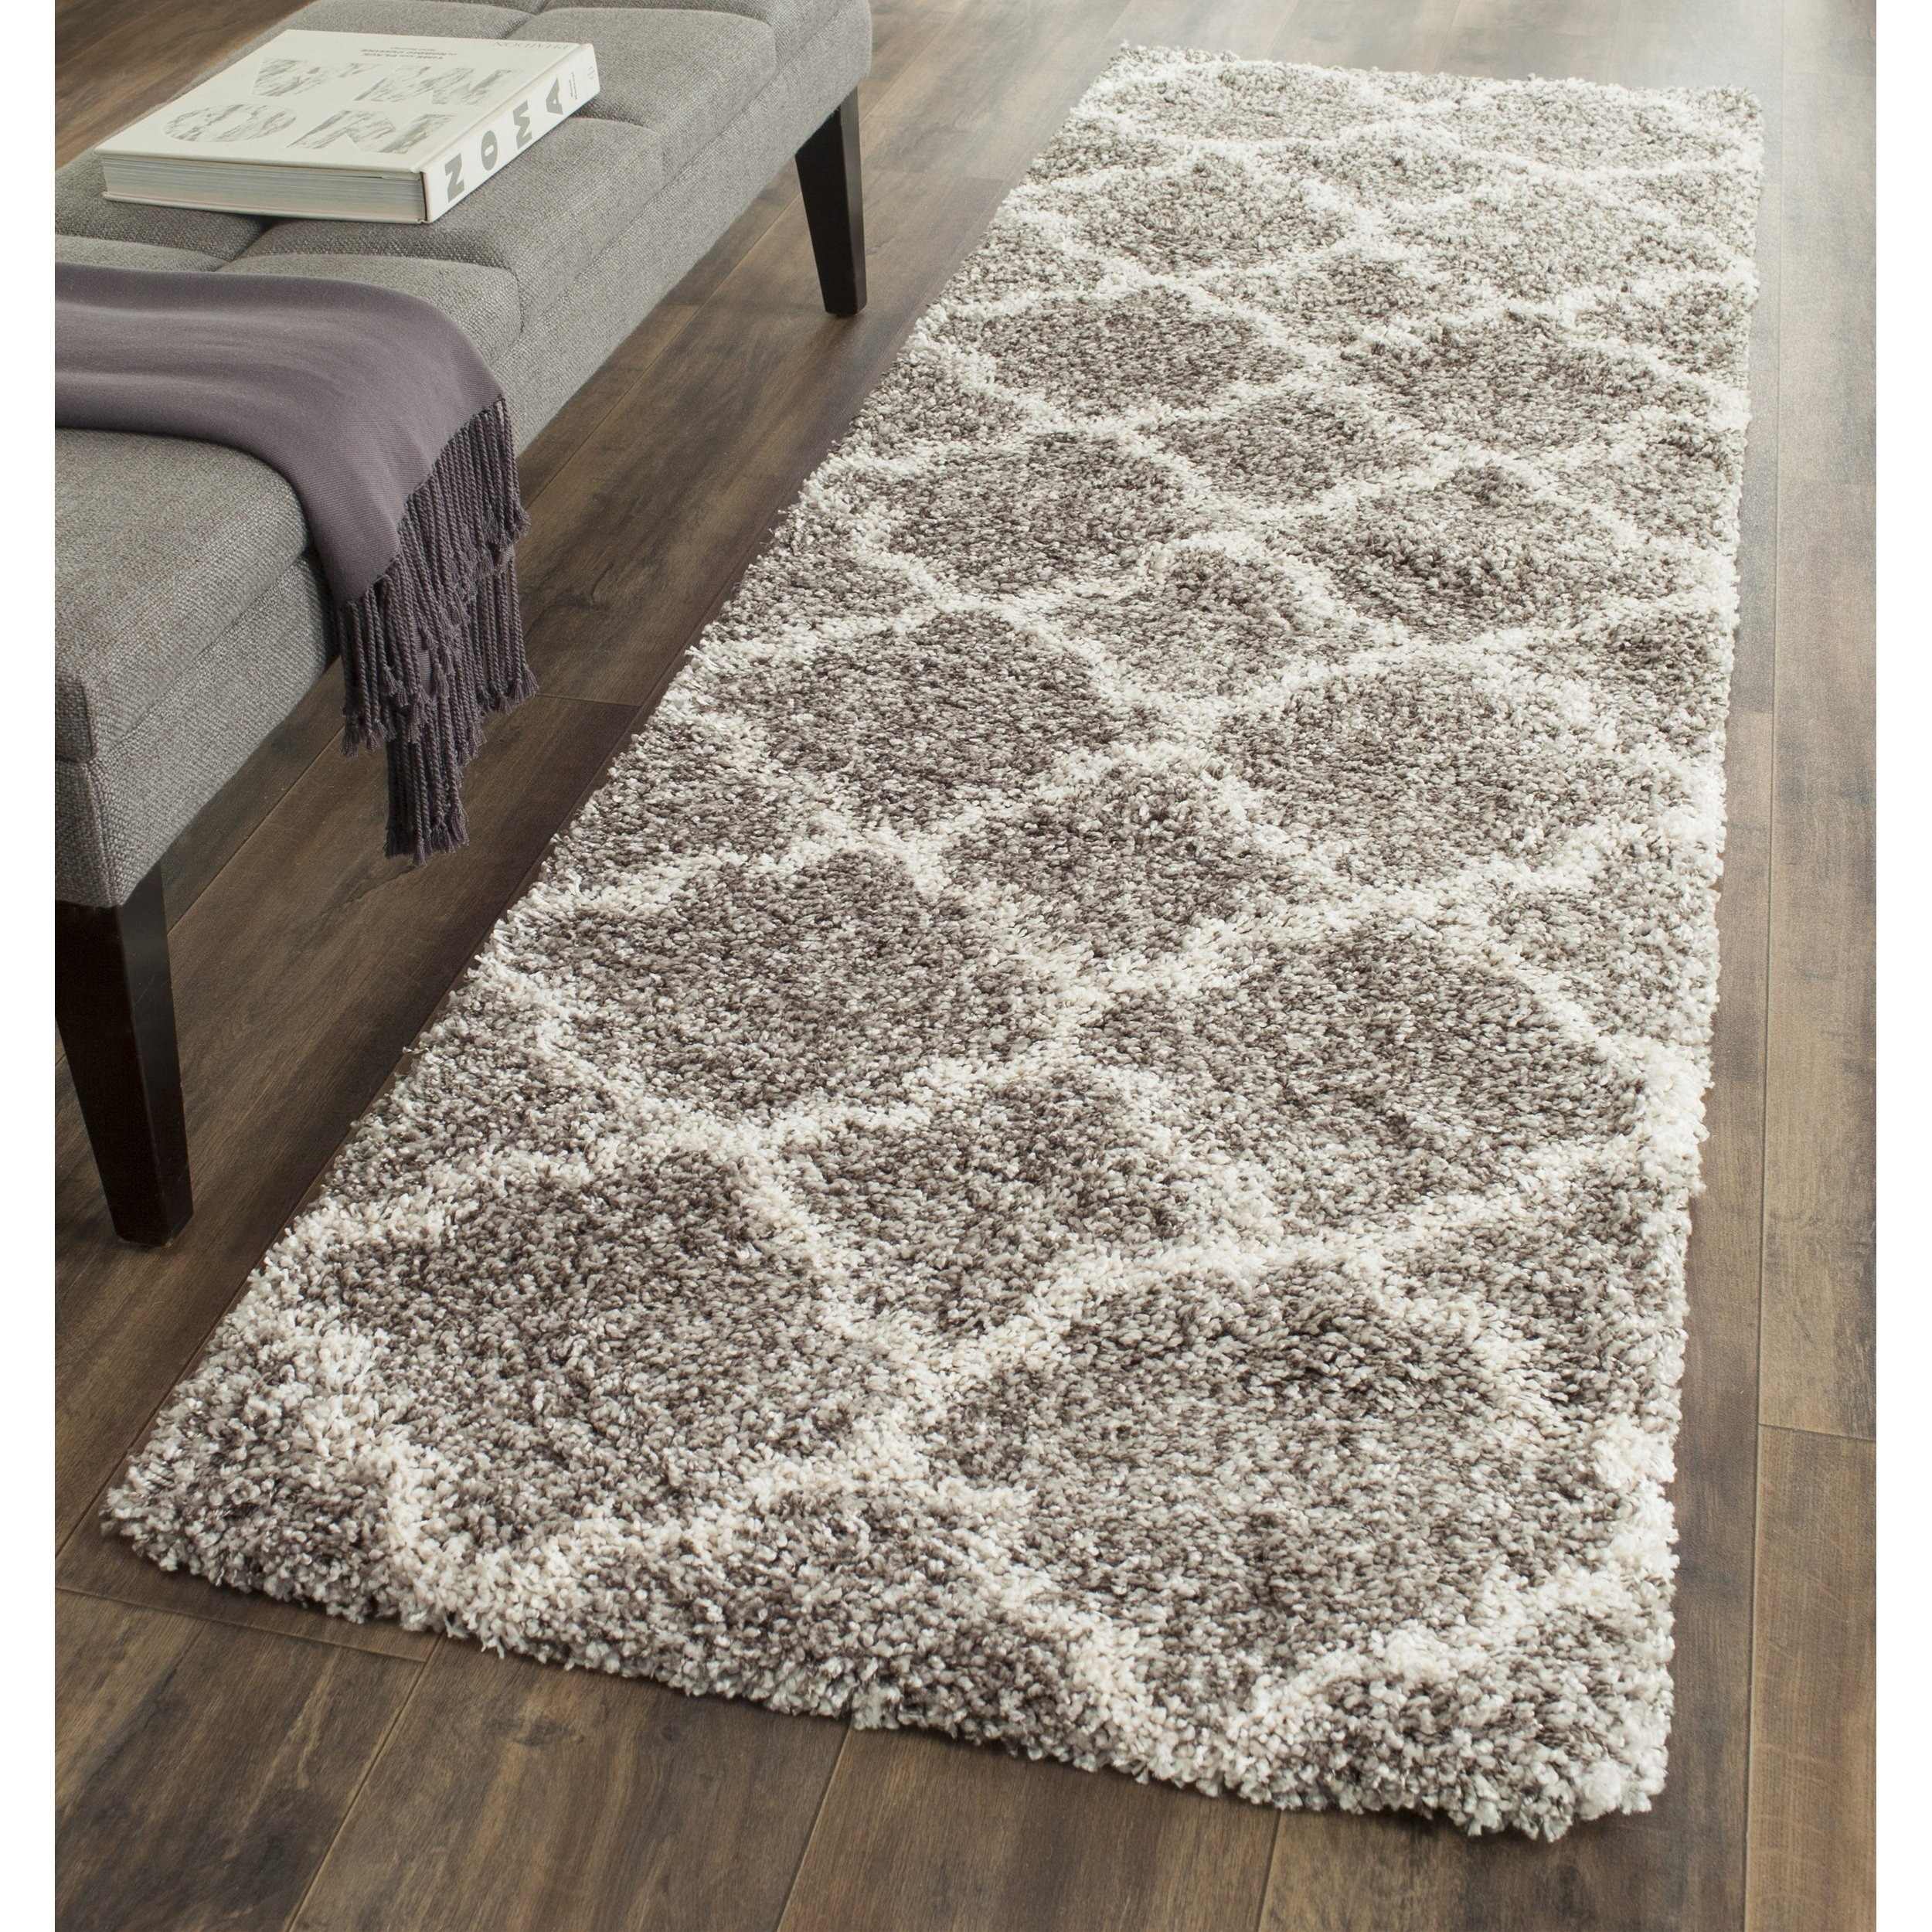 Safavieh Hudson Shag Collection SGH282B Grey and Ivory Moroccan Geometric Quatrefoil Runner (2'3 x 6') by Safavieh